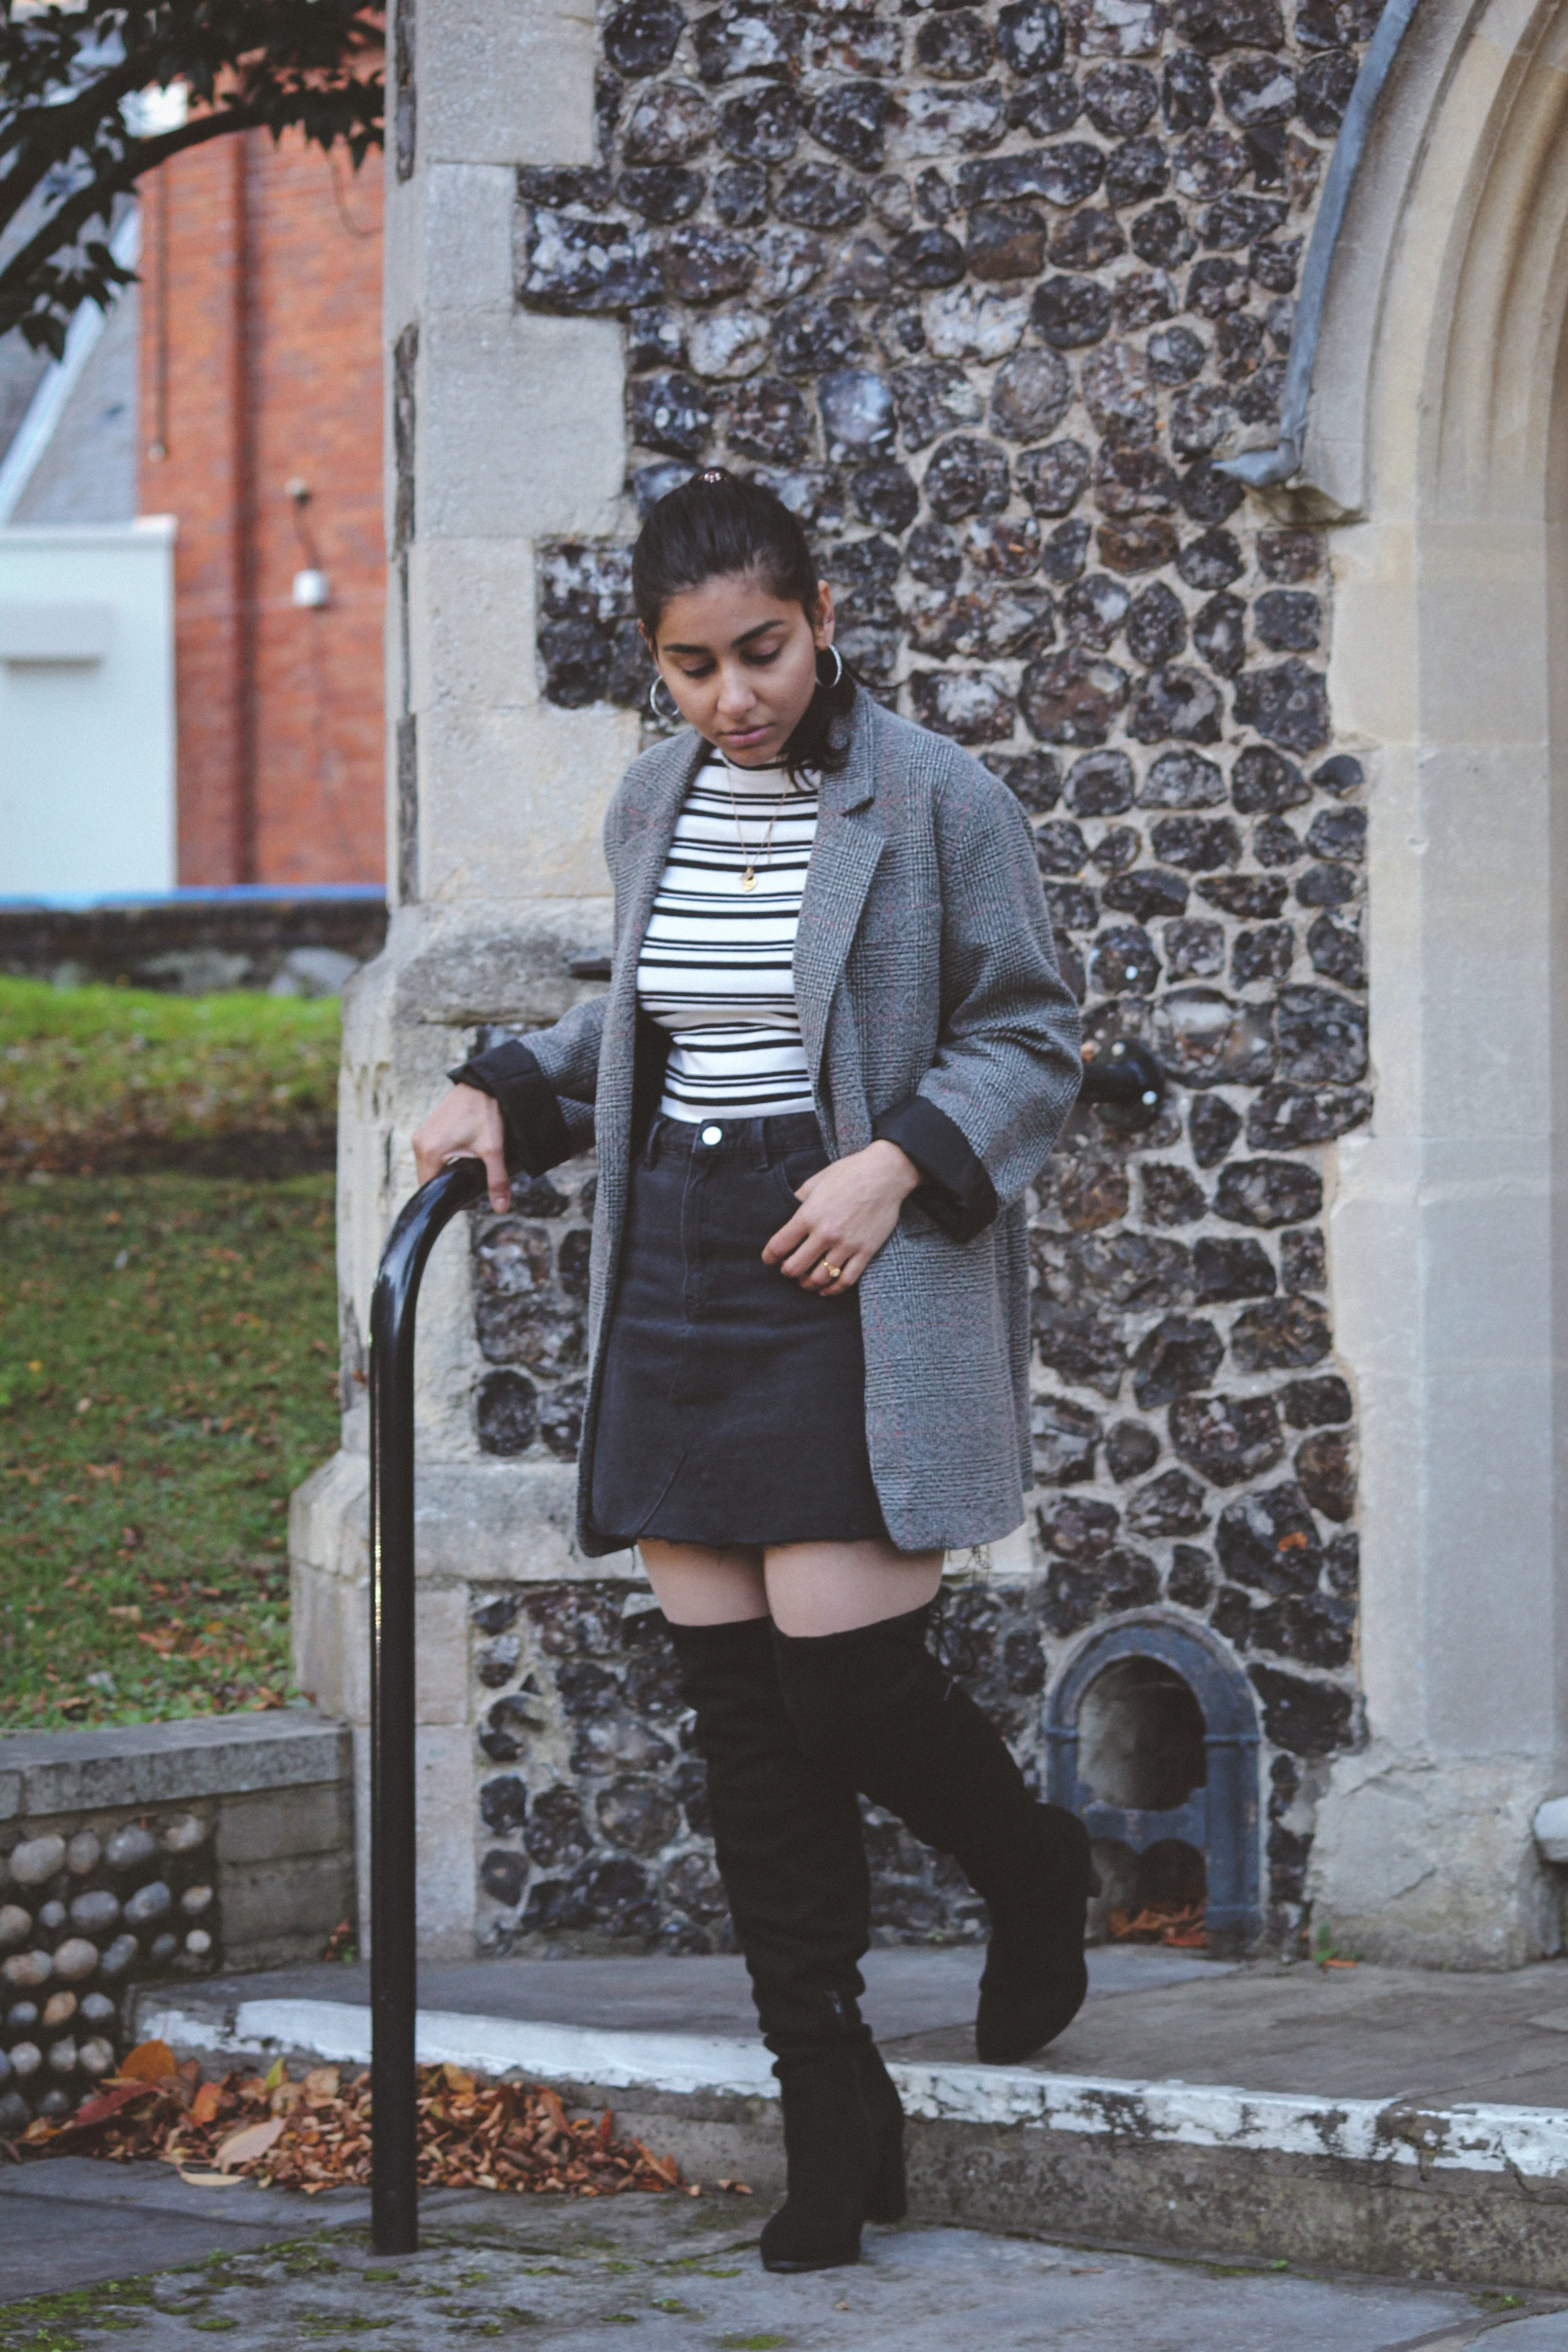 Styling thigh high boots